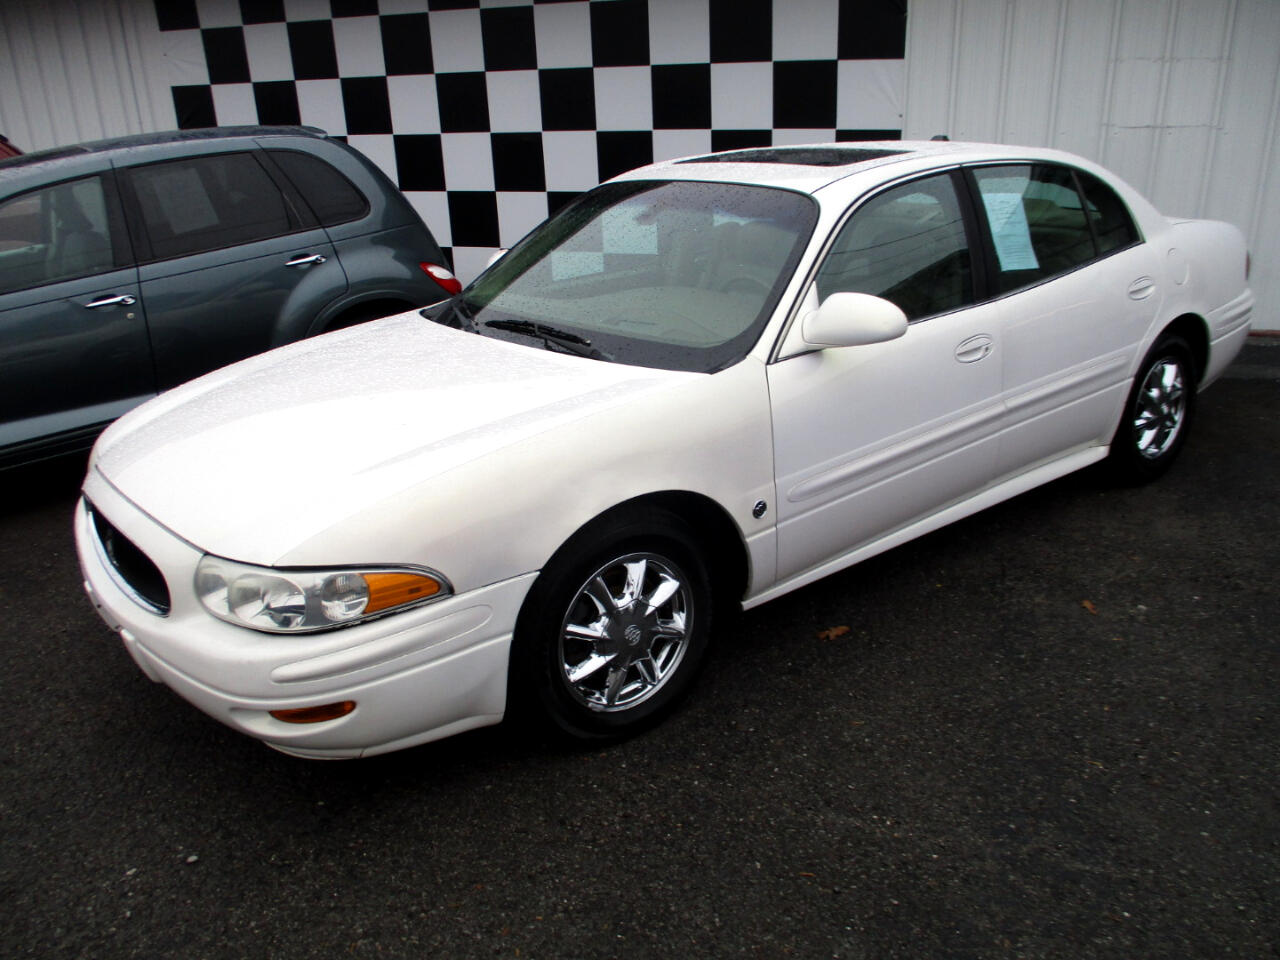 Cars For Sale Knoxville Tn >> Used Cars For Sale Knoxville Tn 37912 Green Light Auto Inc